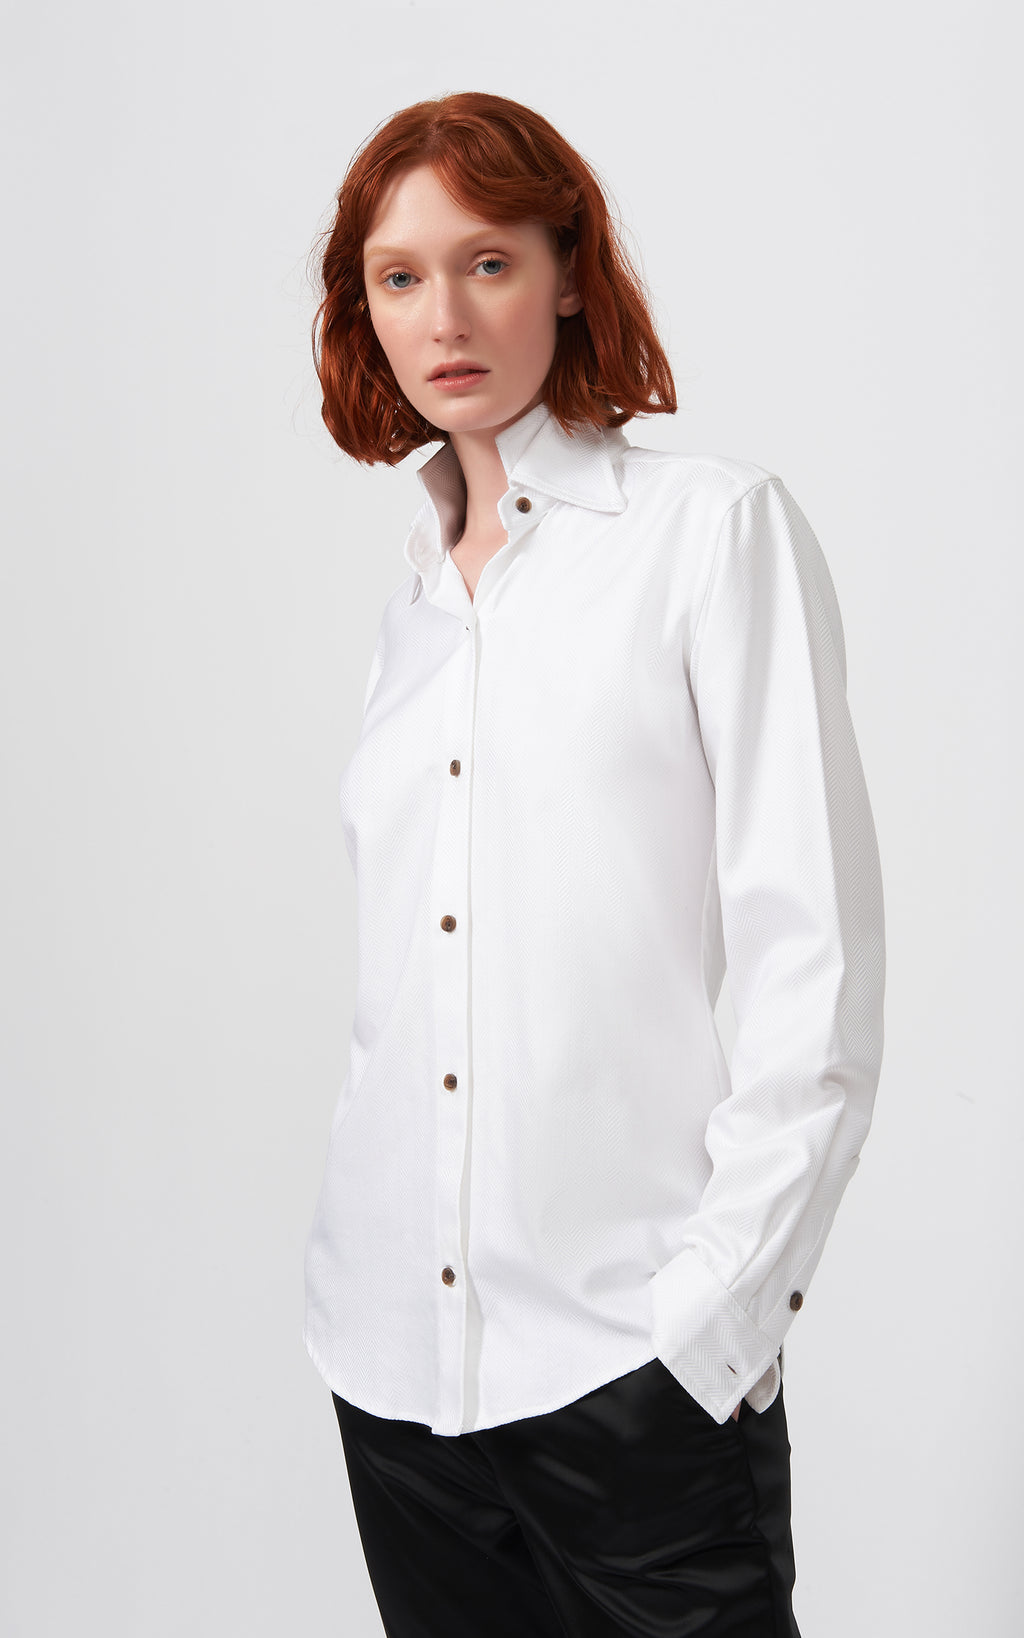 DOUBLE COLLAR SHIRT - HERRINGBONE